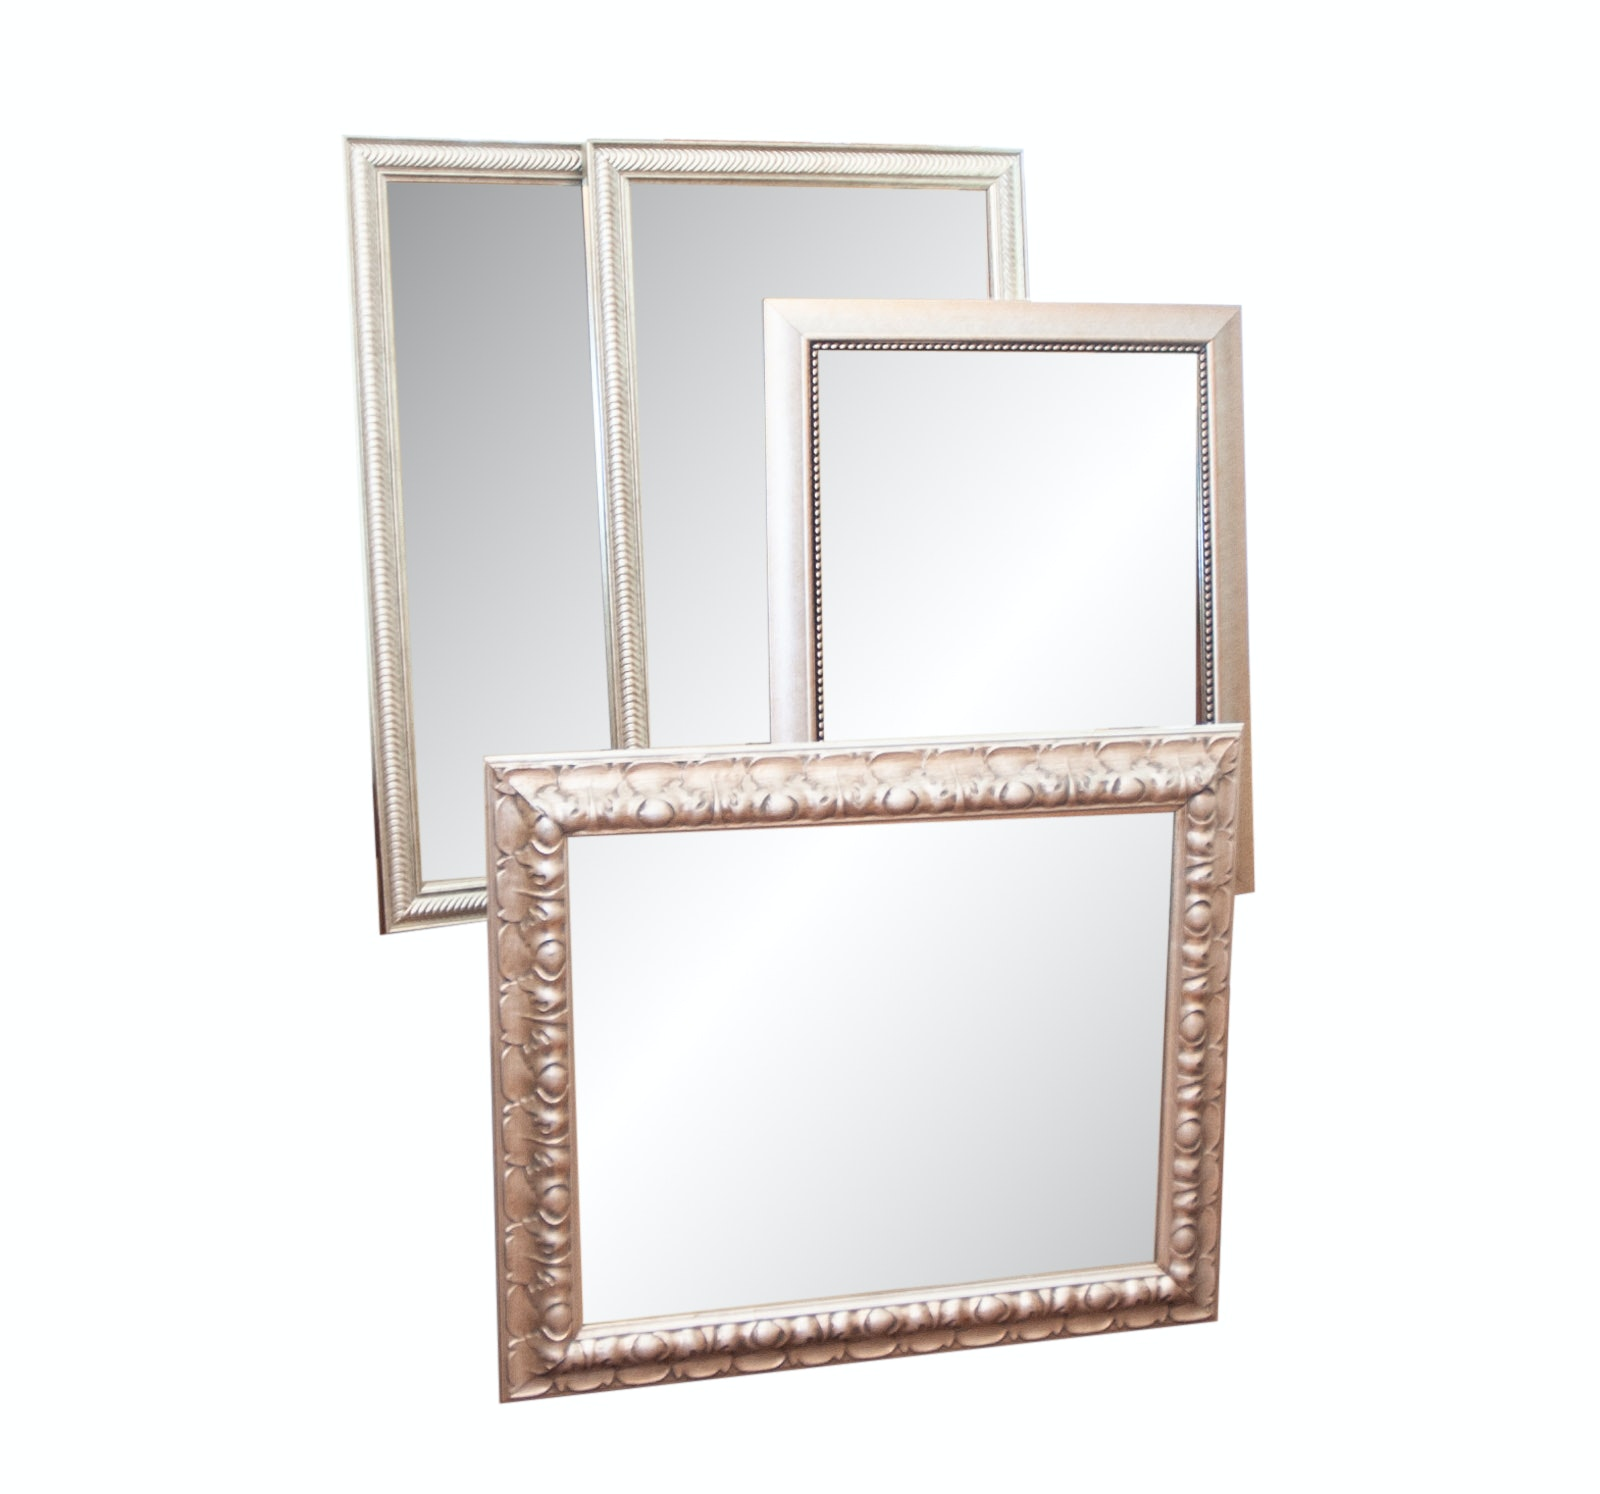 Contemporary Carved Wall Mirrors in Satin Matte Finish